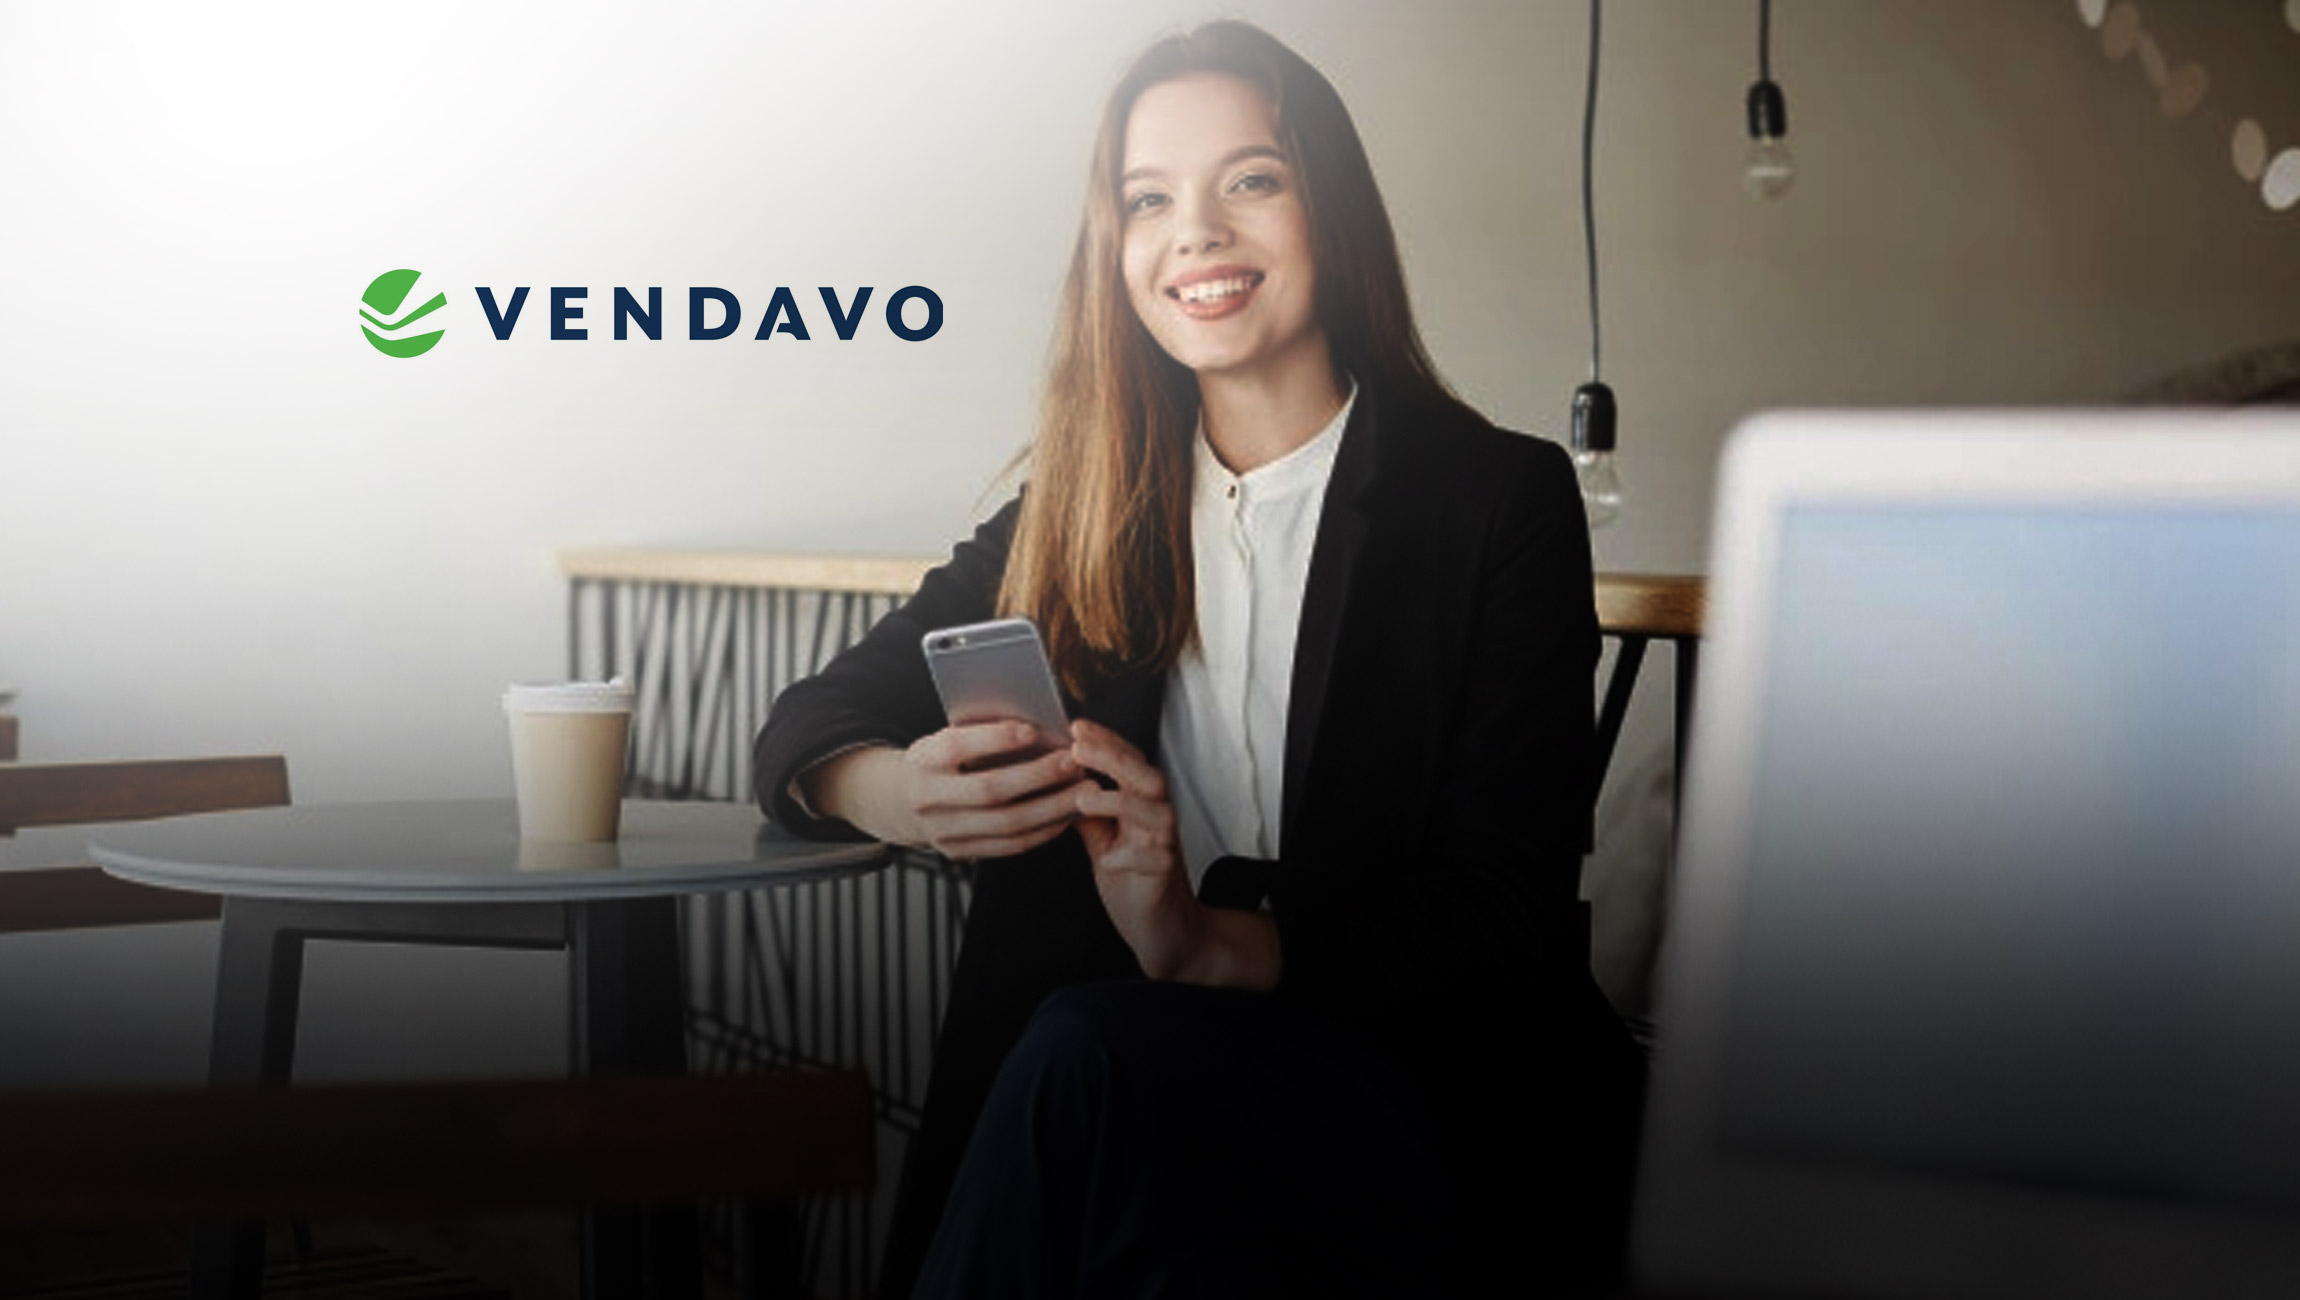 New Vendavo Deal Price Optimizer Enables AI-Powered Price Optimization for Every Deal